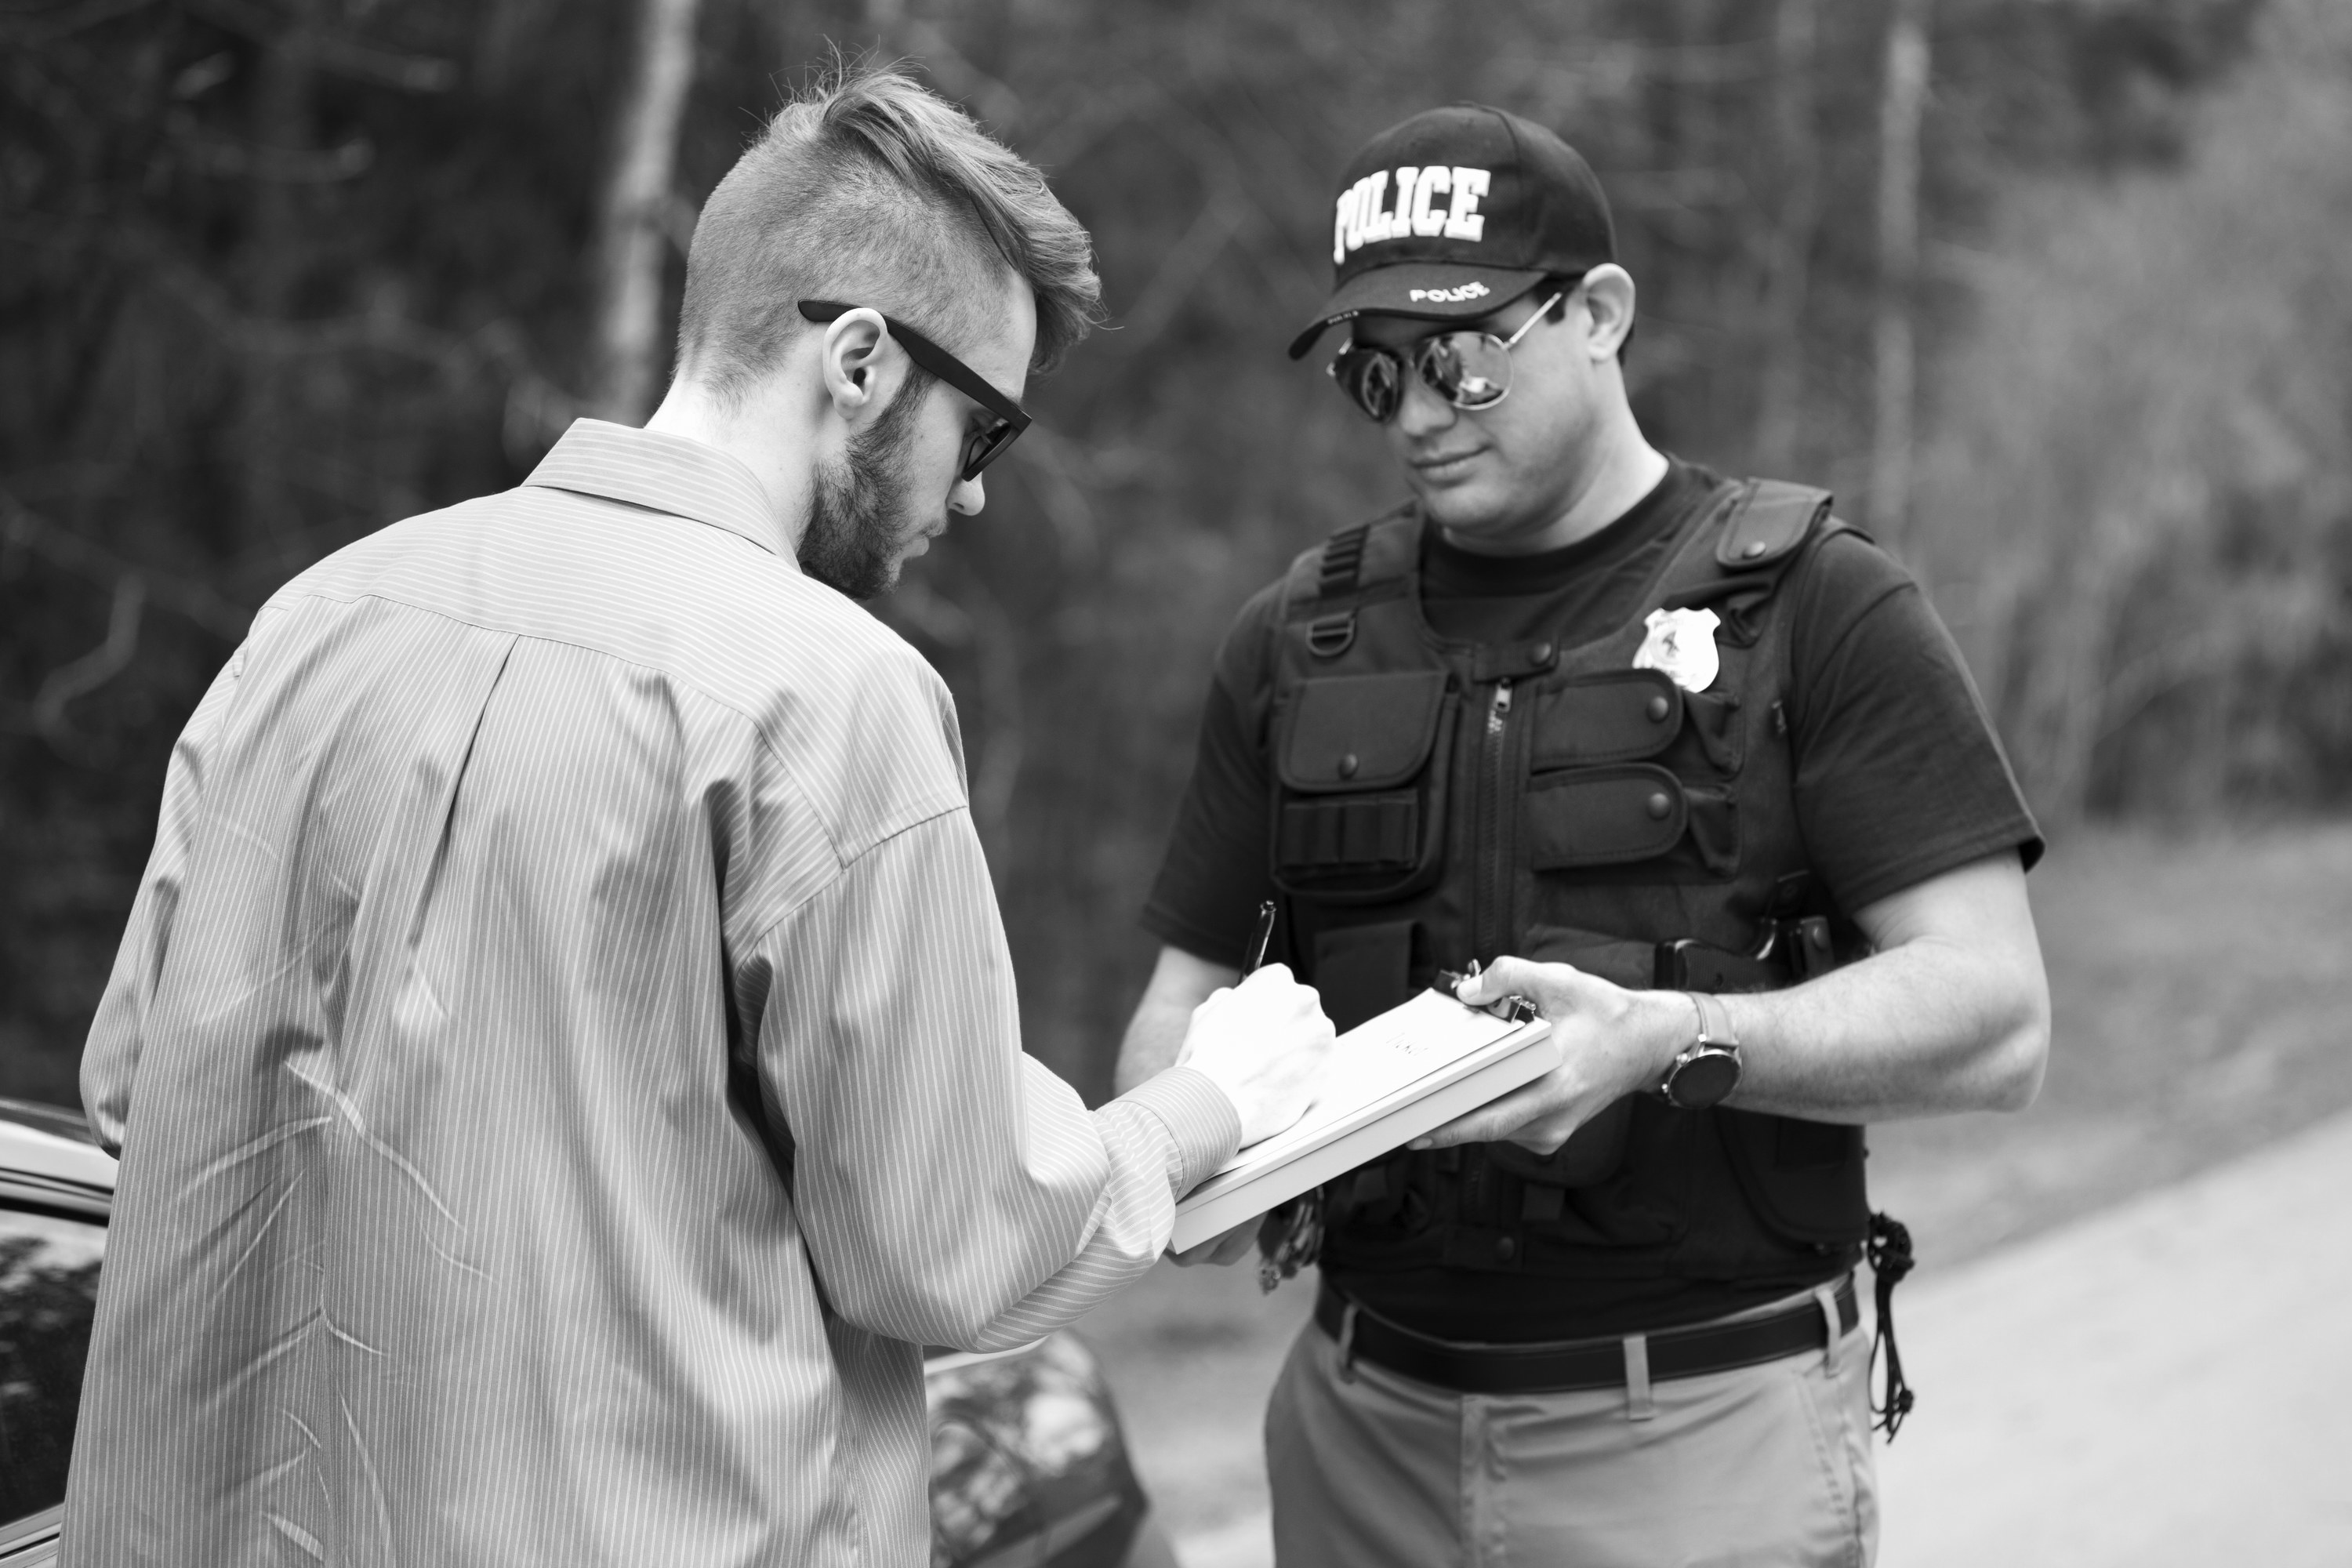 A man speaking to a police officer